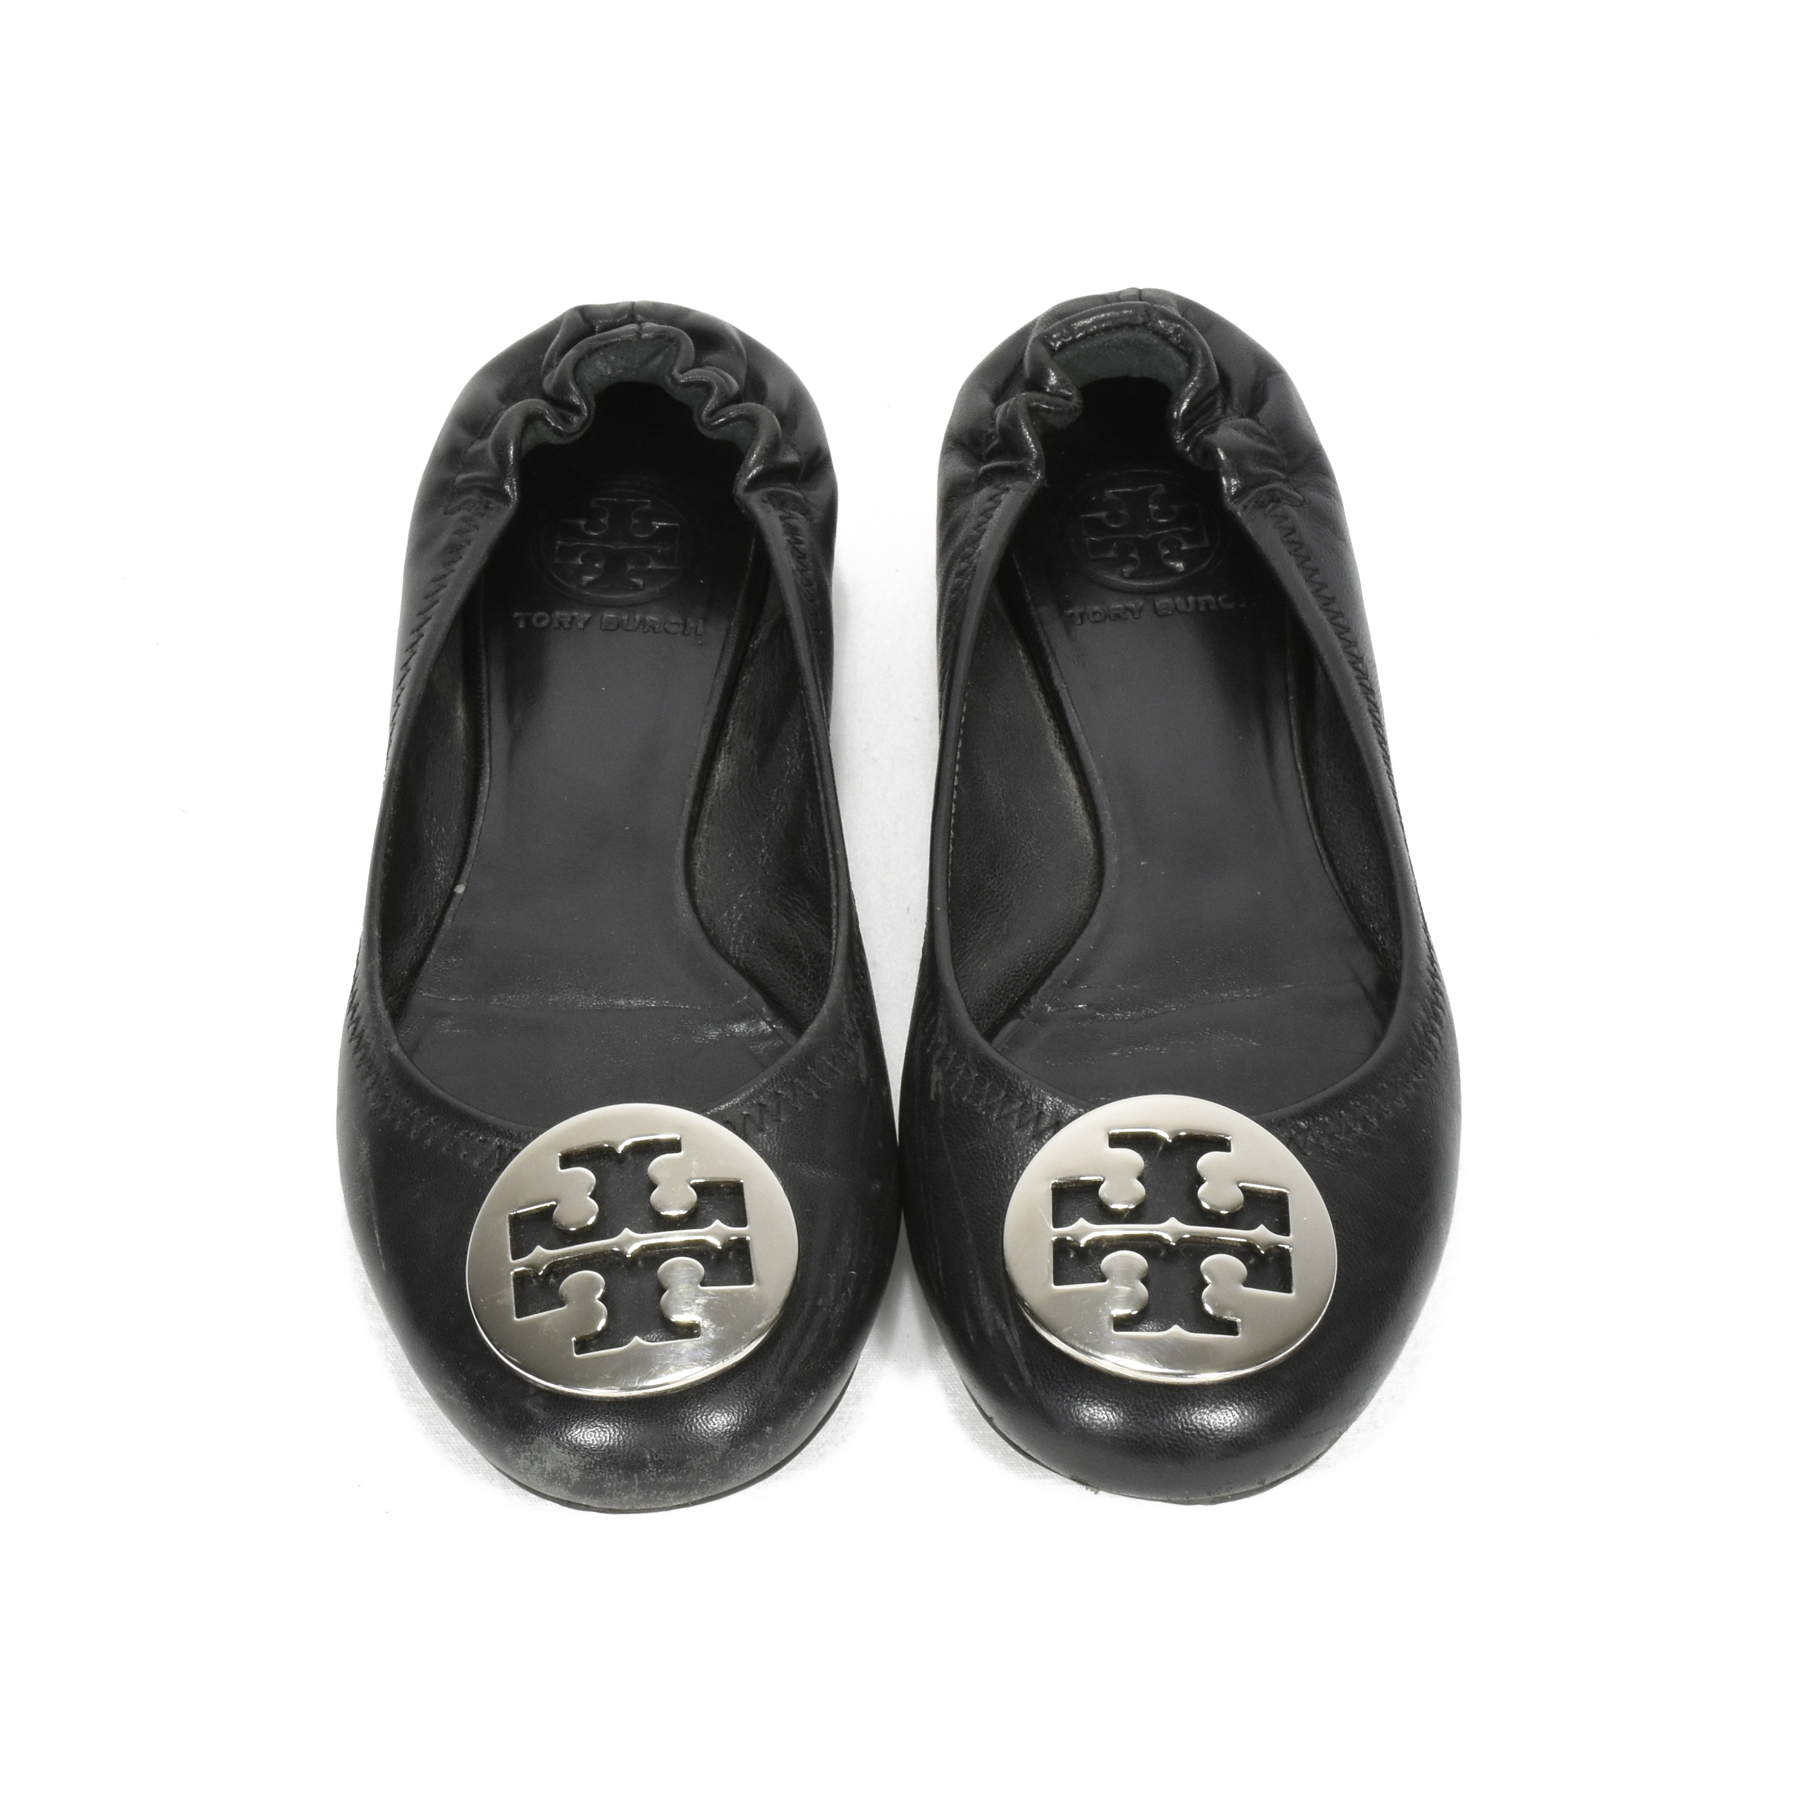 c279bc74b Authentic Second Hand Tory Burch Reva Ballet Flats (PSS-371-00010 ...